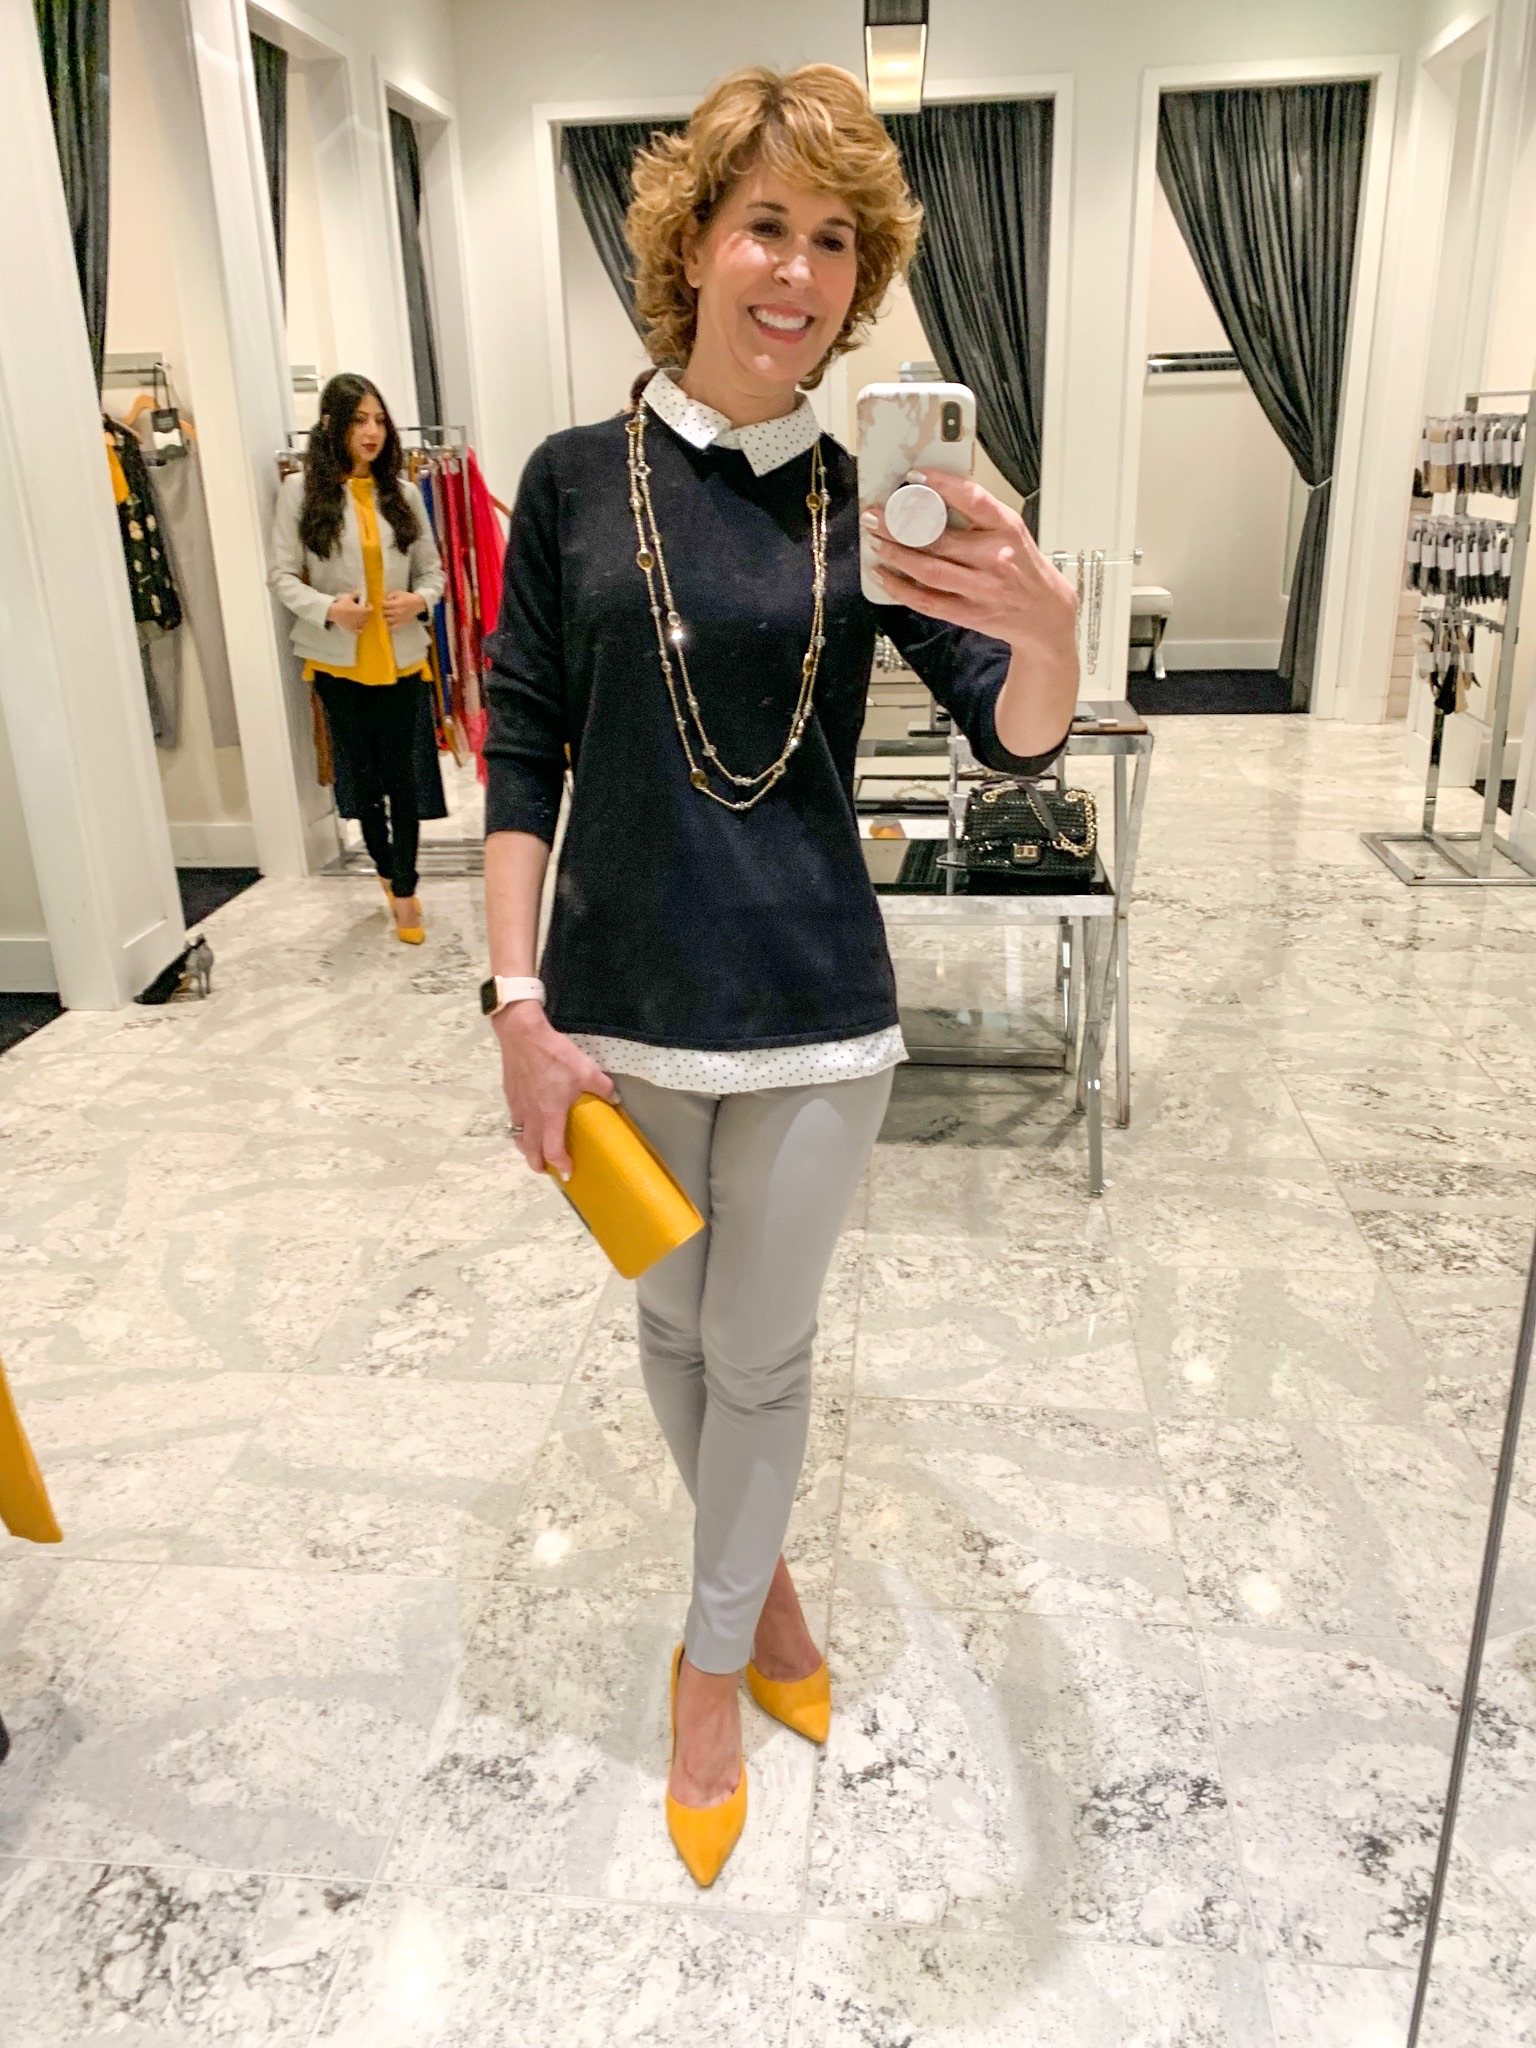 mirror selfie of woman carrying yellow clutch purse